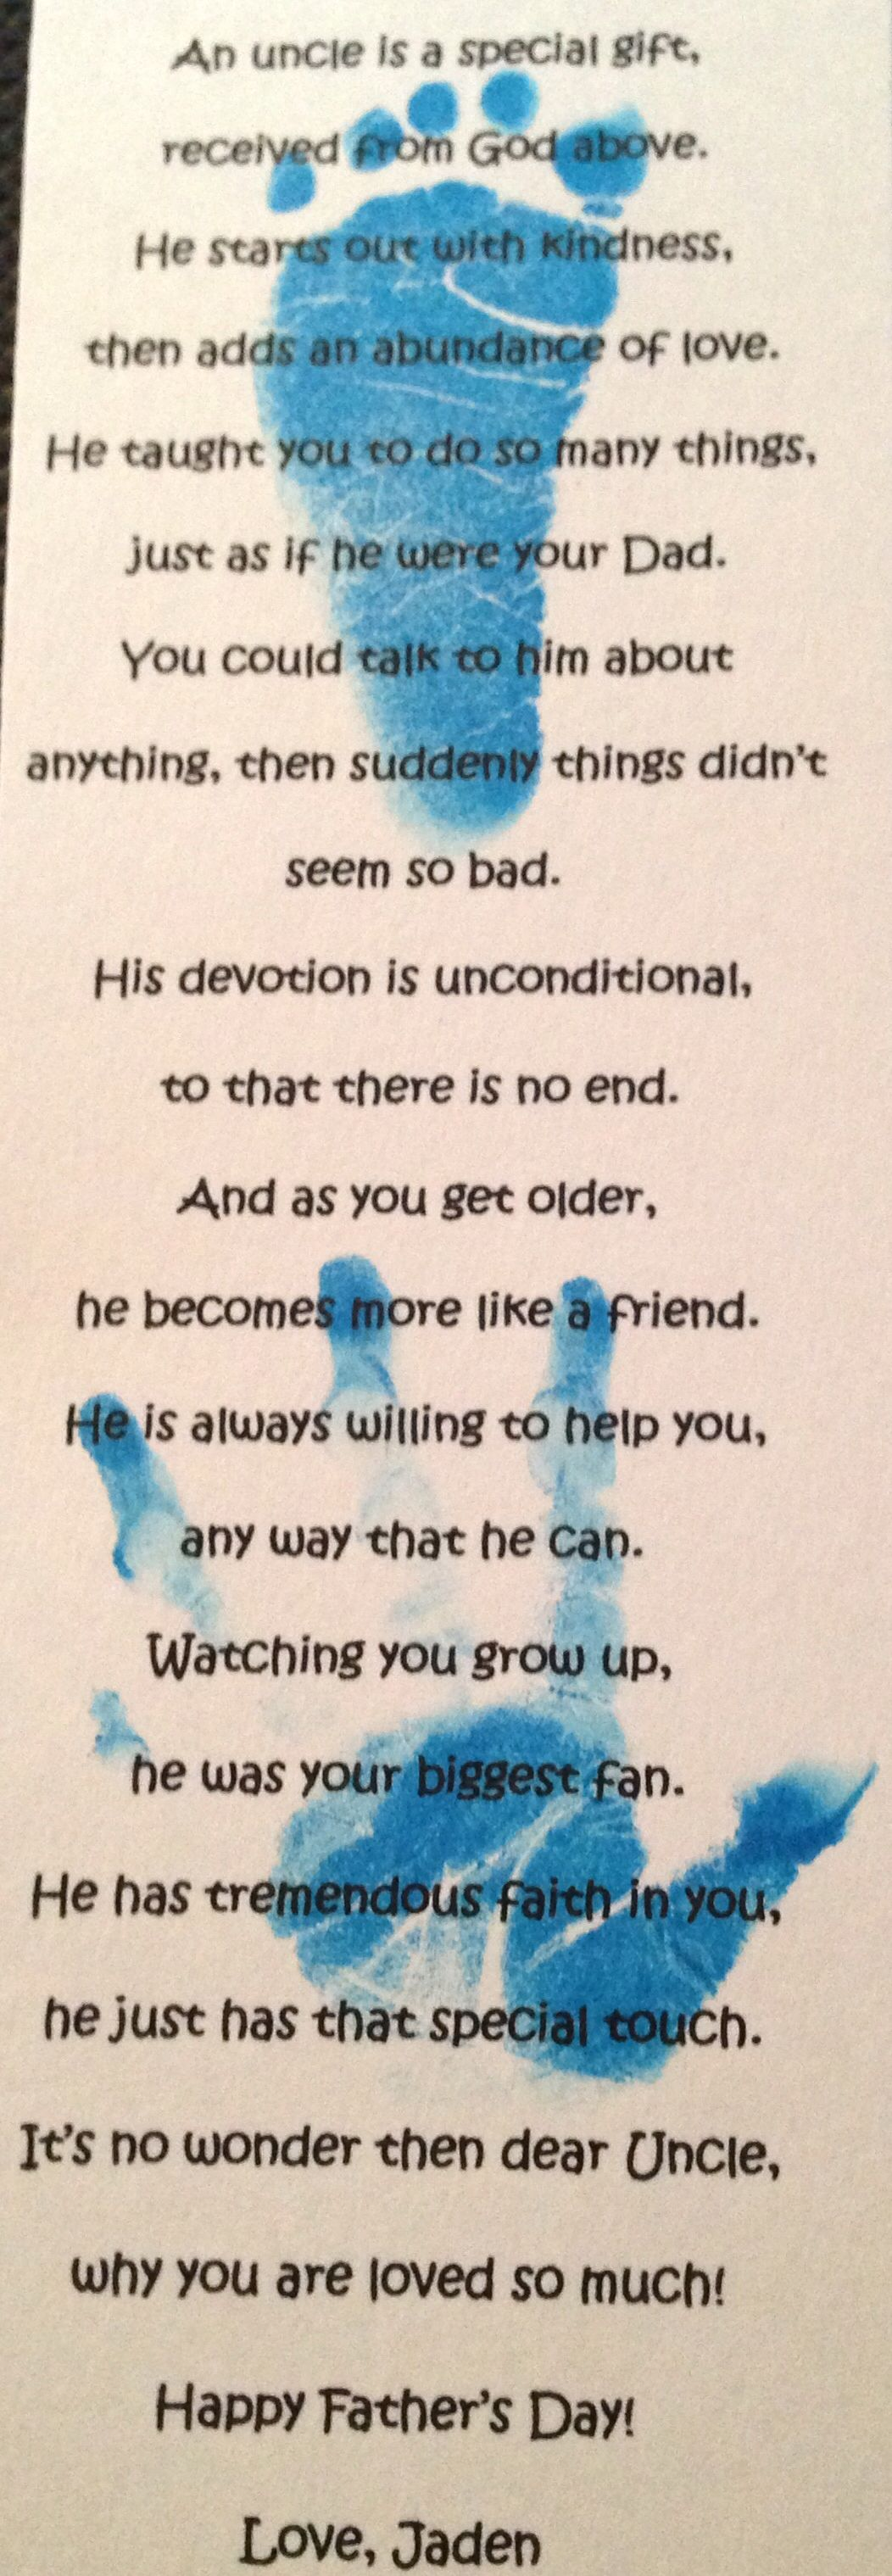 fathers day uncle poem for jadens amazing uncles